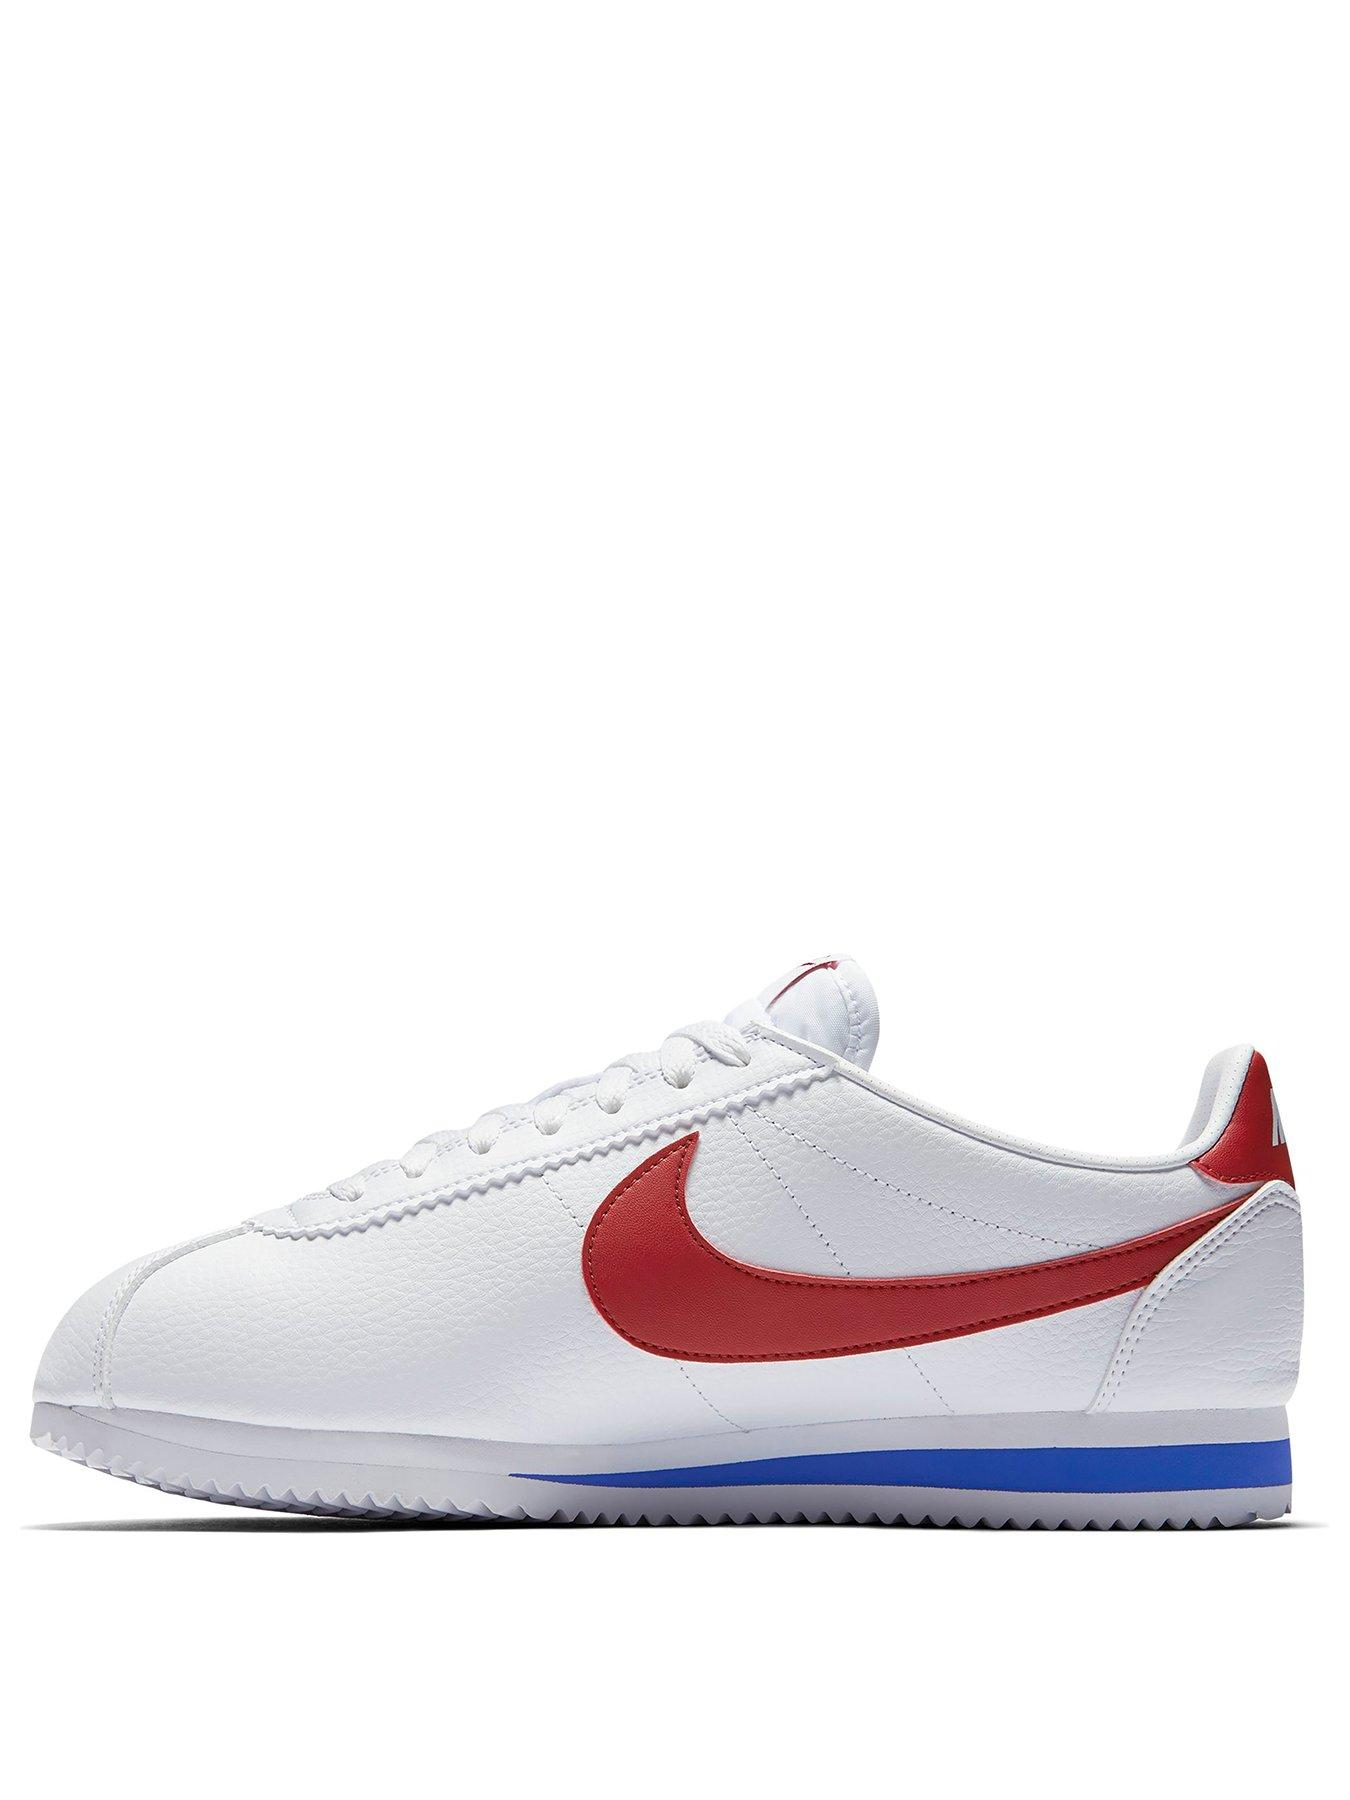 Nike Classic Cortez Leather 1600140677 Men's Shoes Nike Trainers